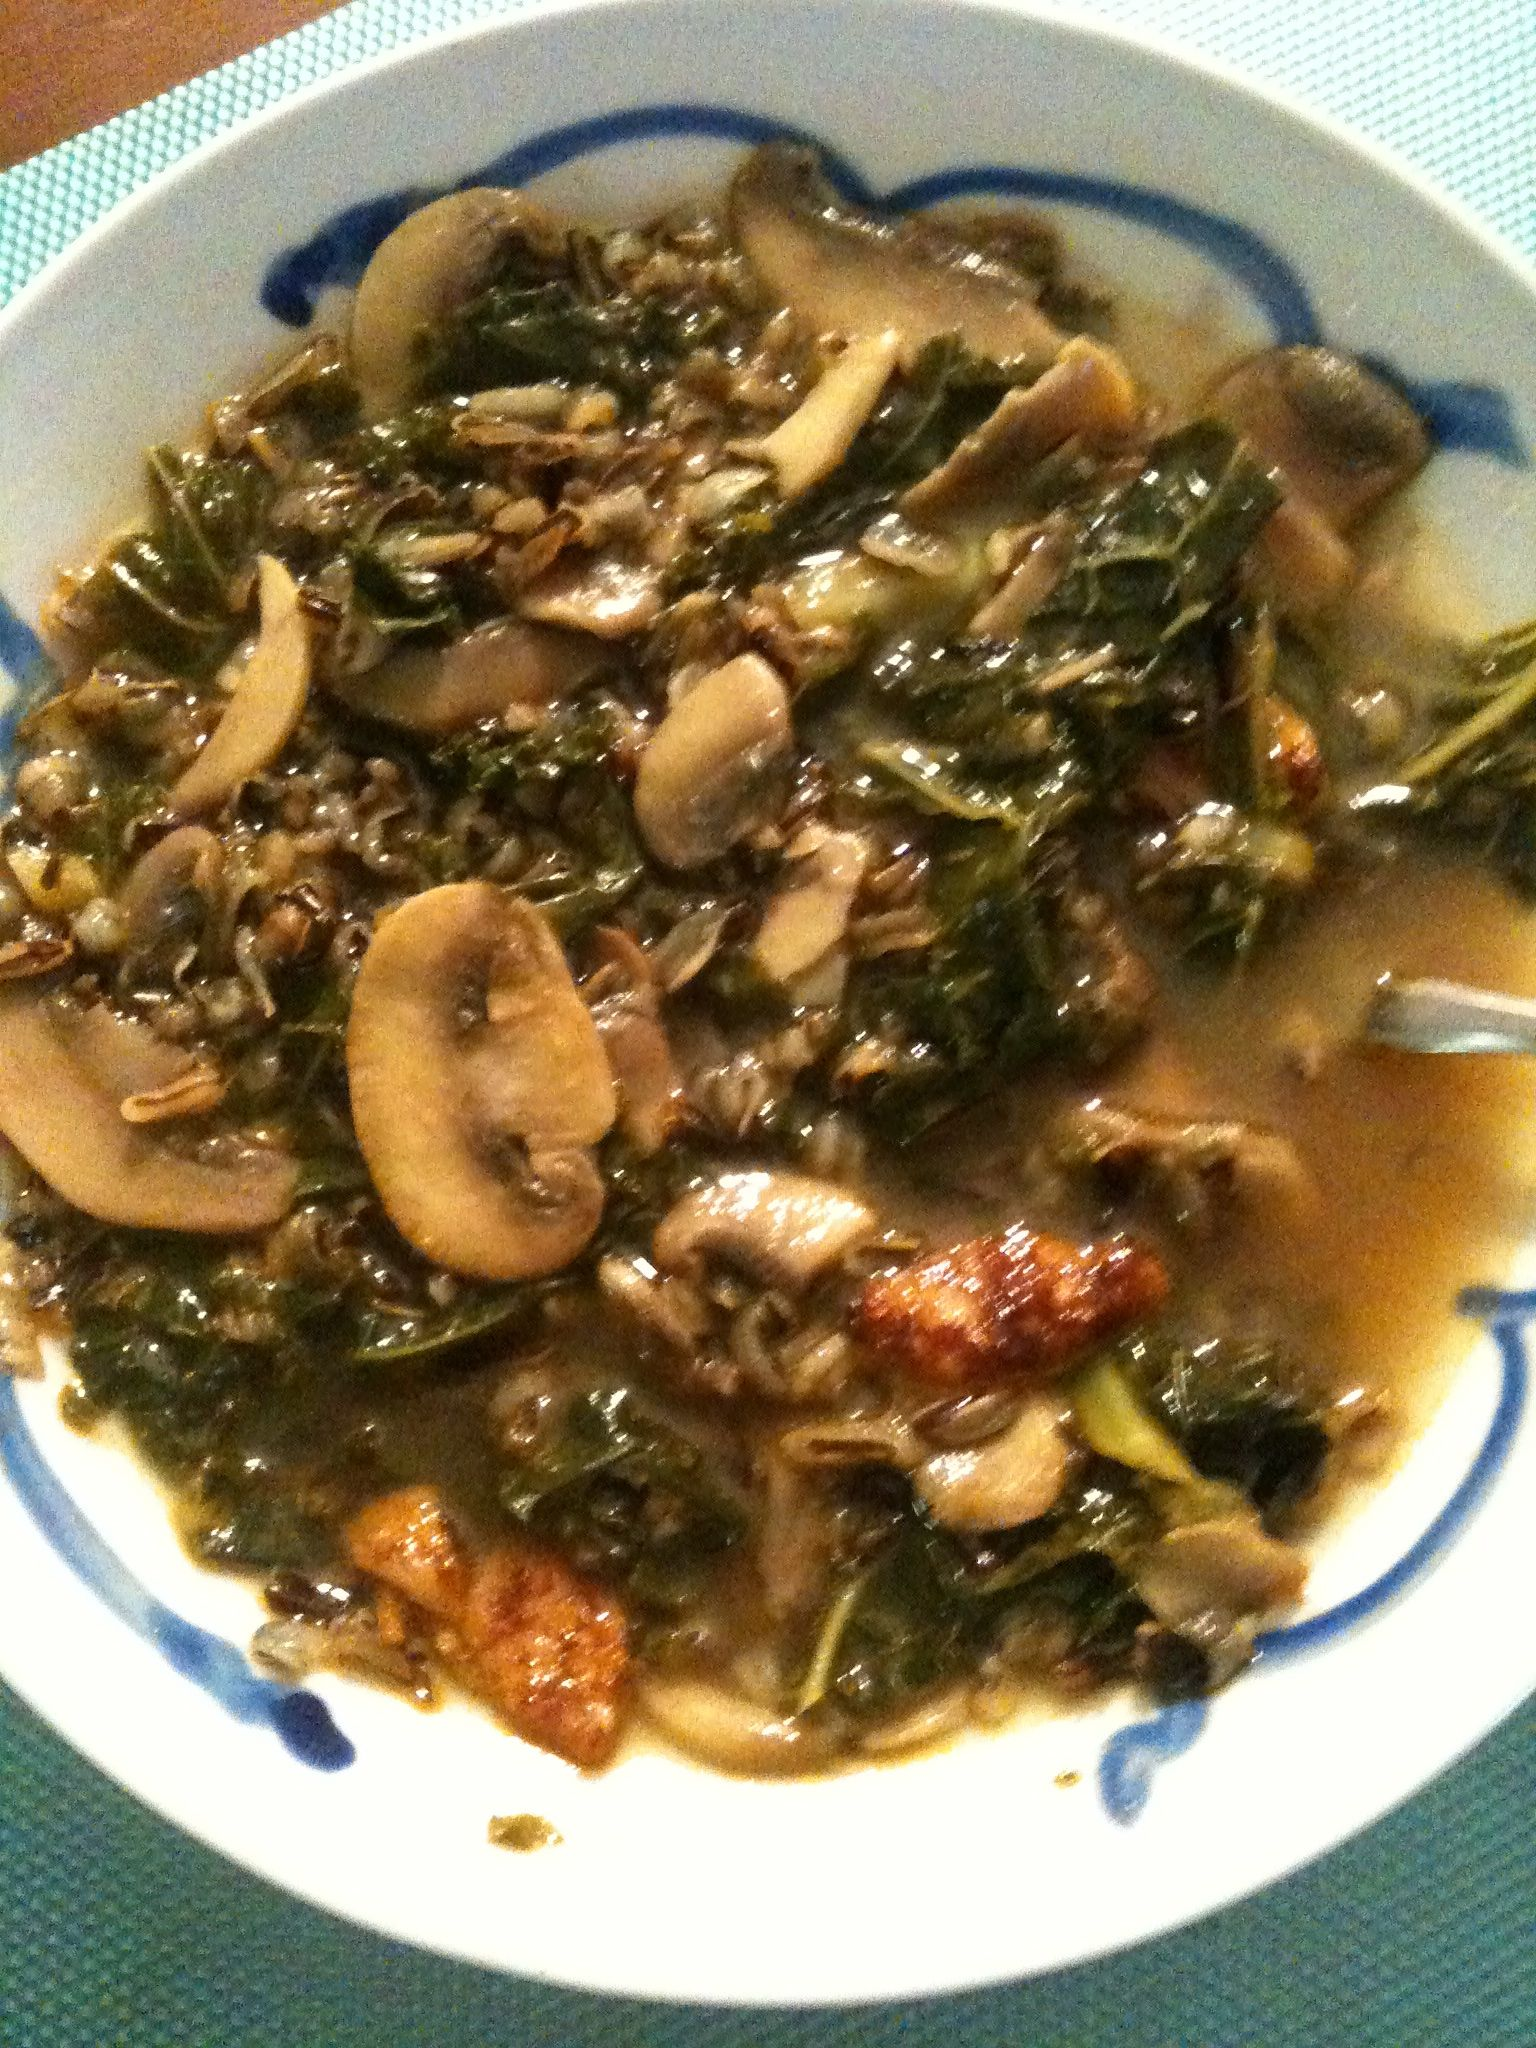 Brown Rice And Greens Soup With Turkey Sausage Recipe — Dishmaps